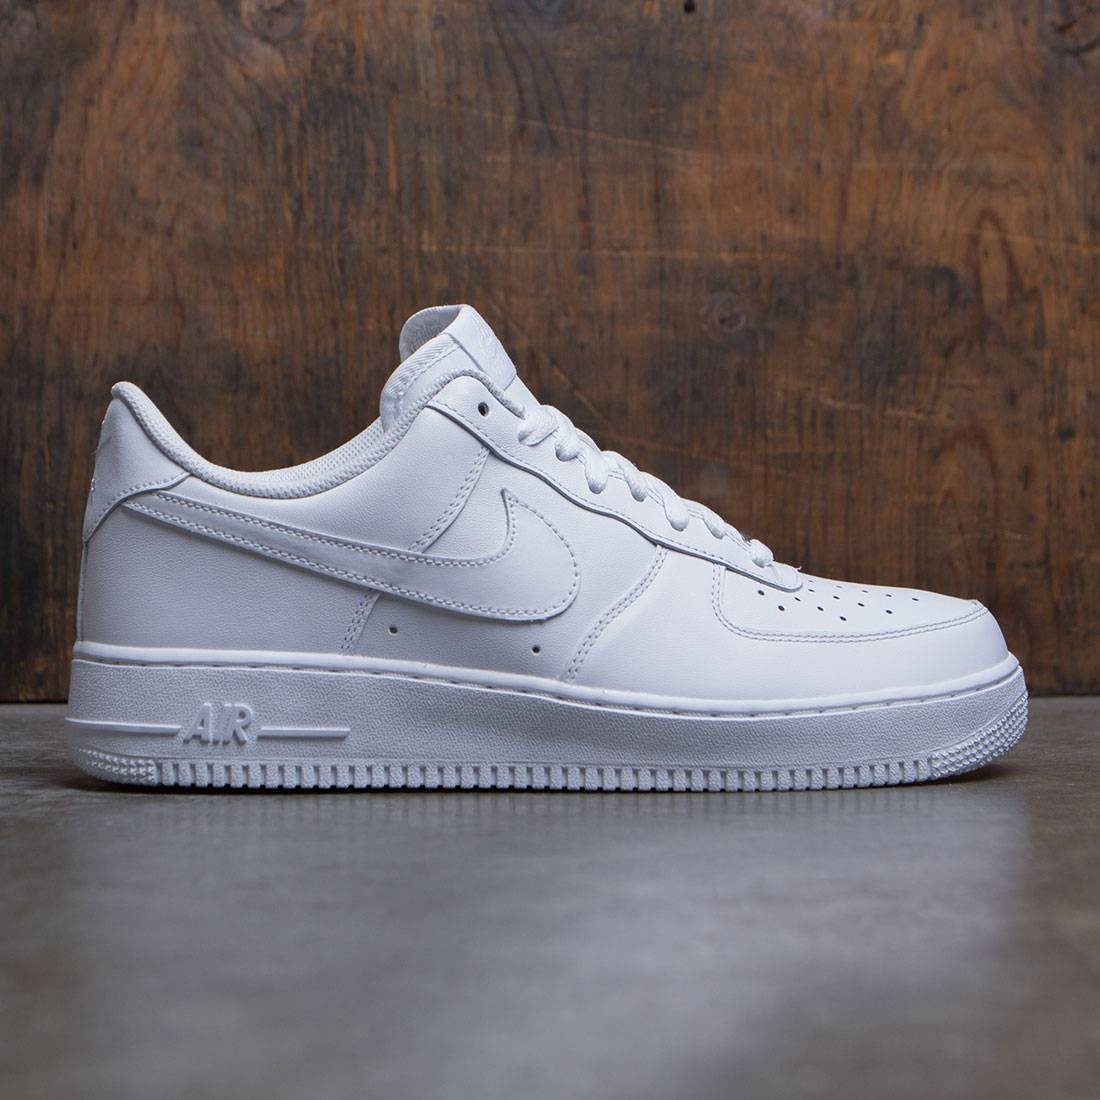 2air force 1 07 low